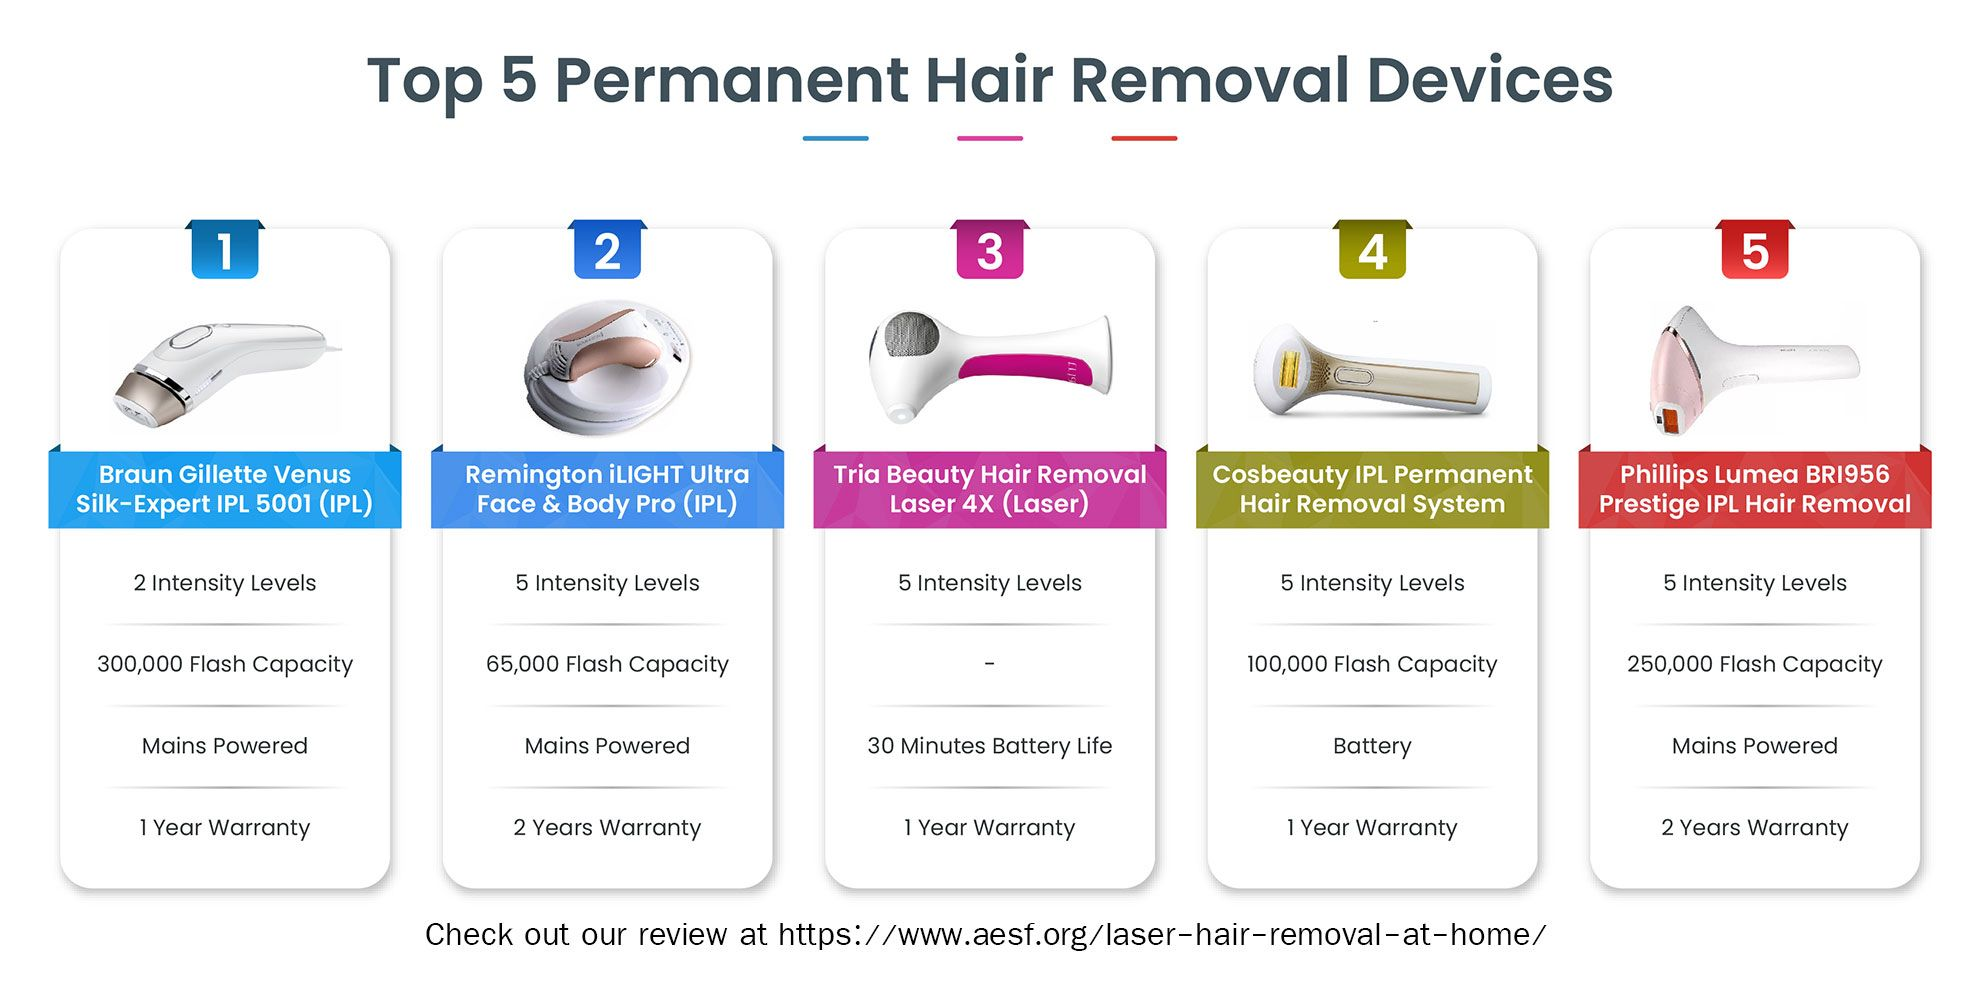 Ipl And Laser Permanent Hair Removal Devices Reviews At Https